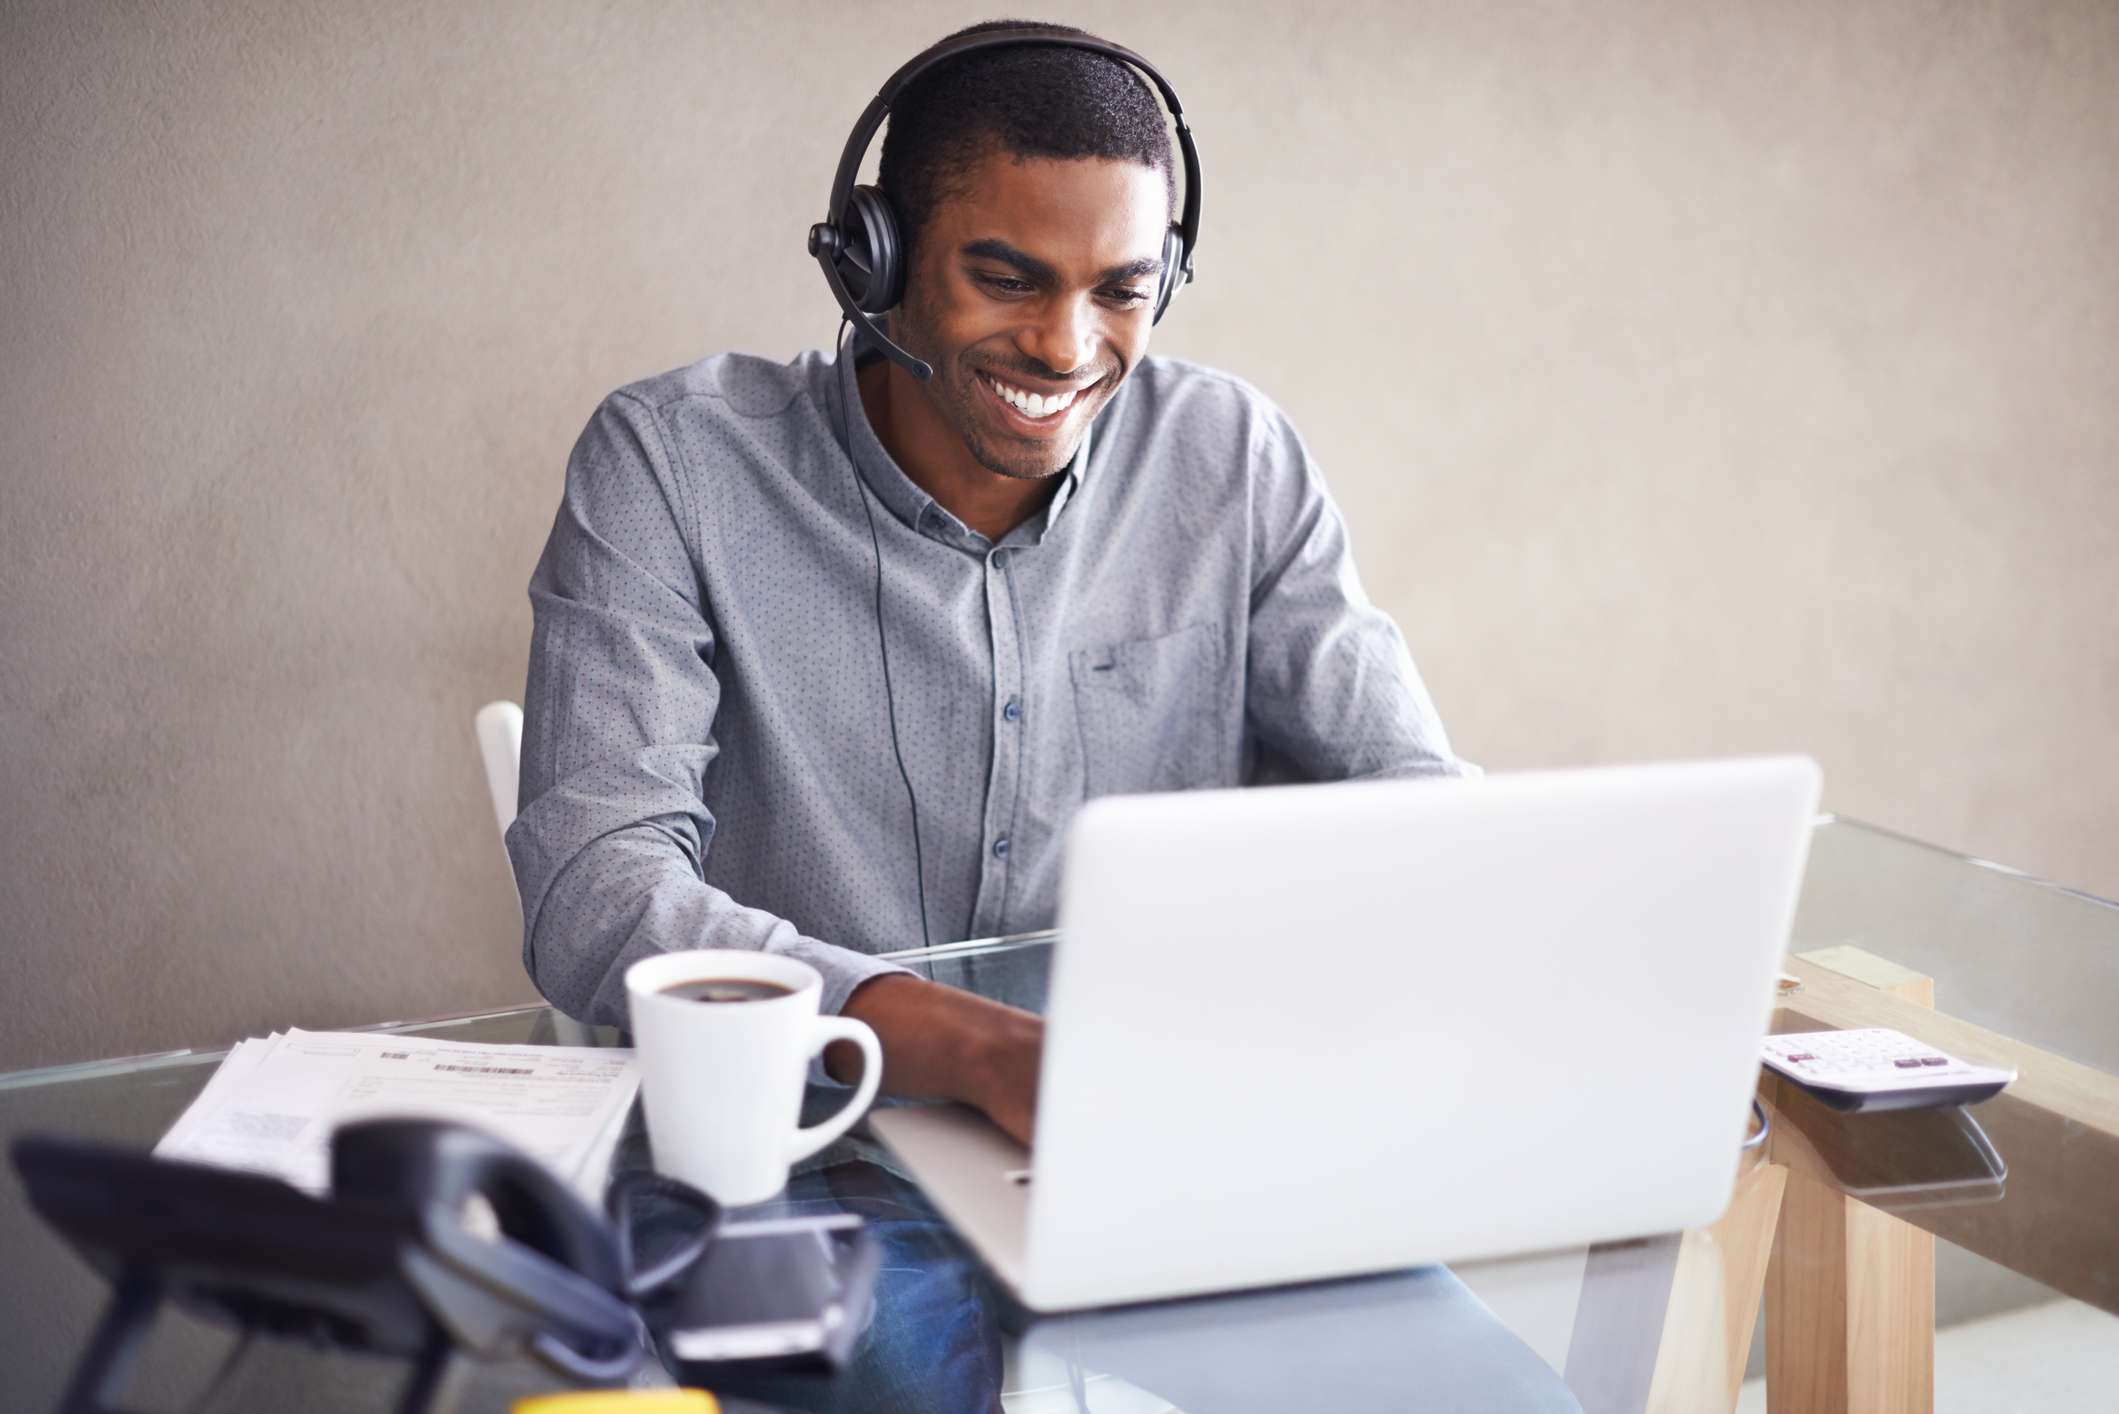 Man on his laptop with a headset on